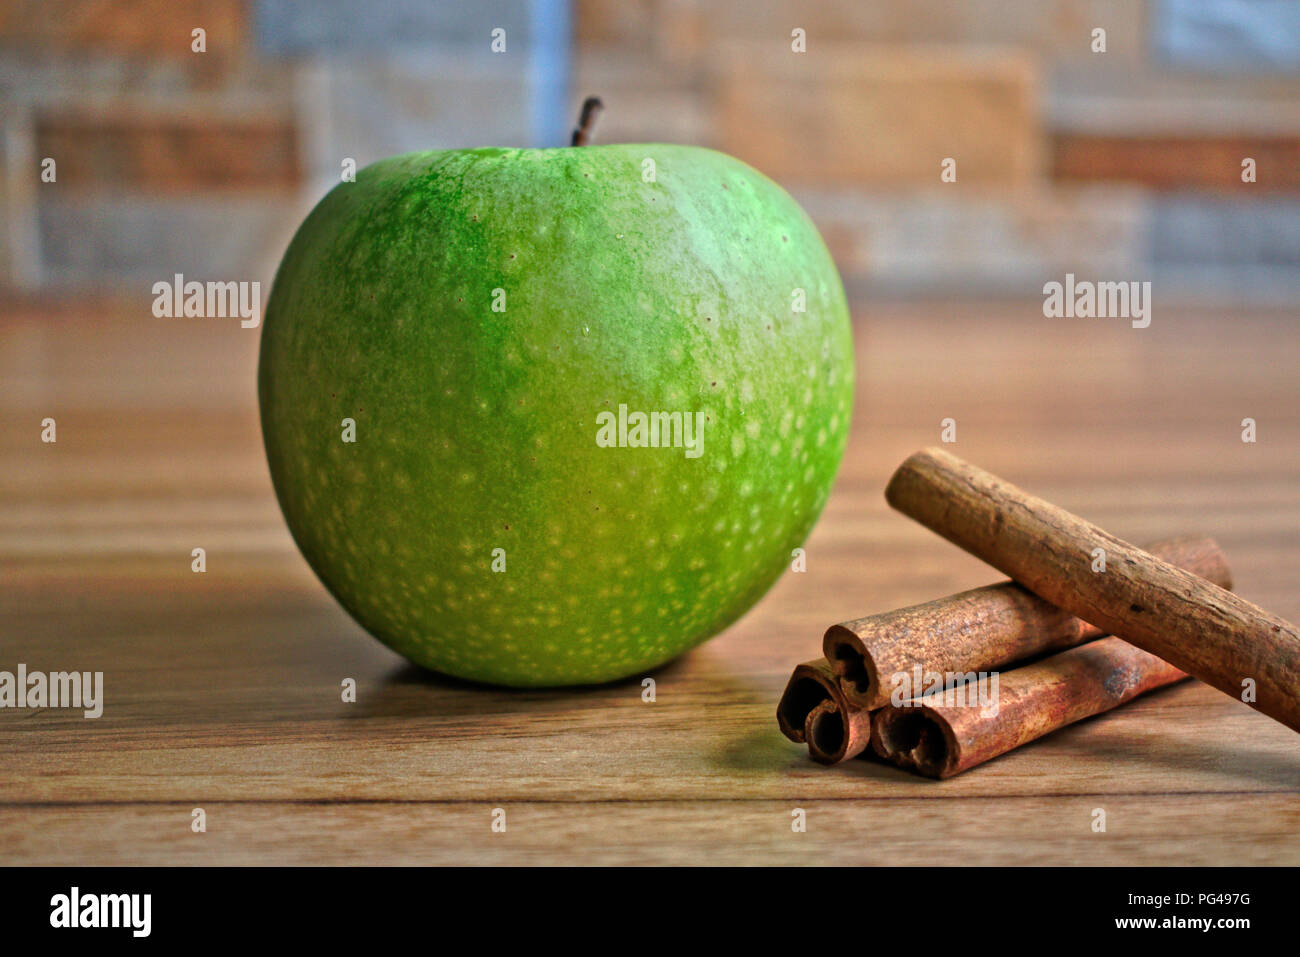 Green apple and cinnamon on a wooden table - Stock Image